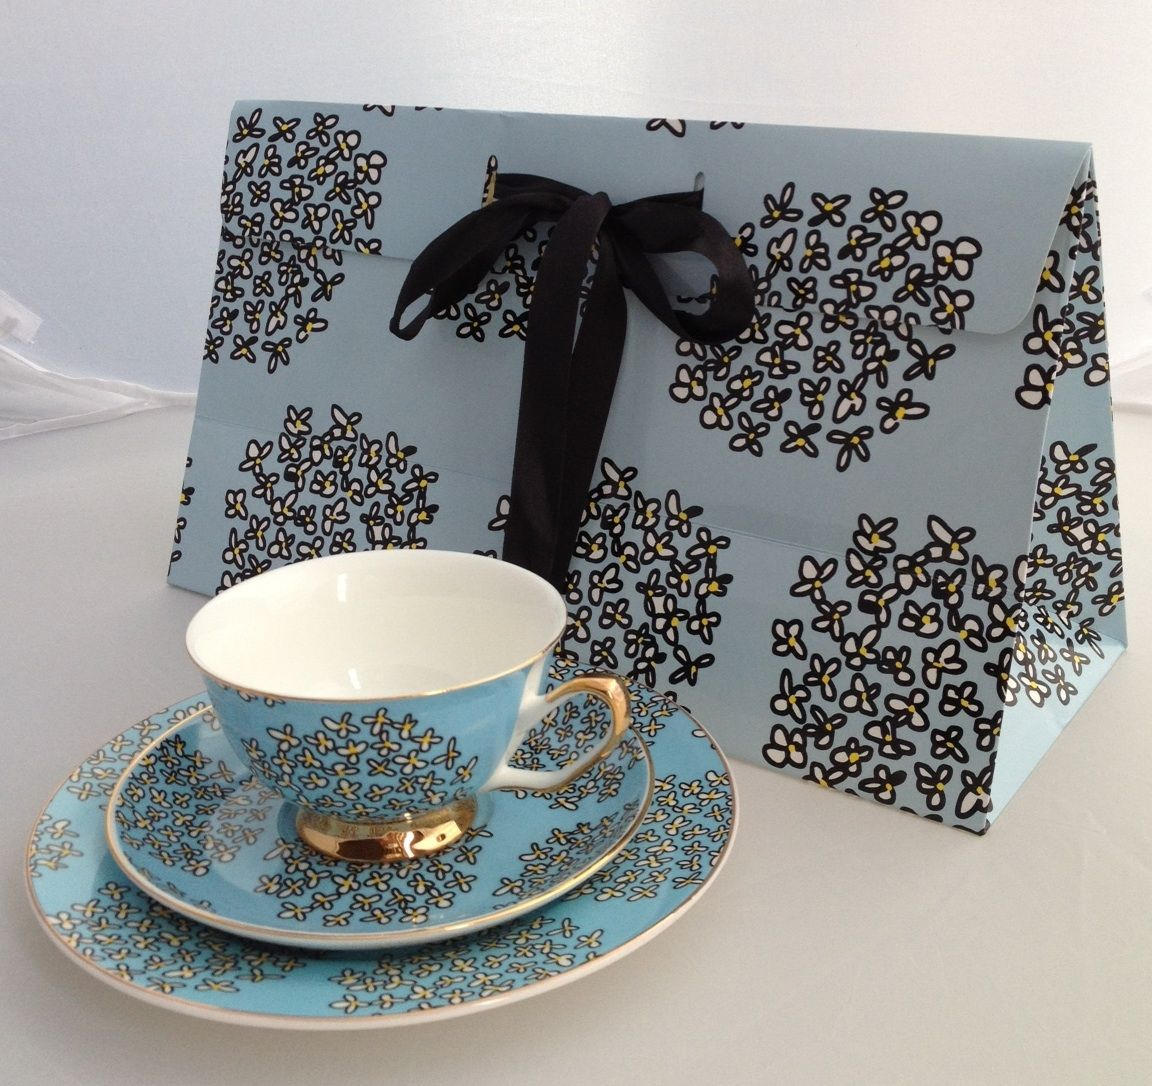 Flower Spots gift set teacup saucer cake plate \u0026 ribbon gift bag. : cake plate with ribbon - pezcame.com